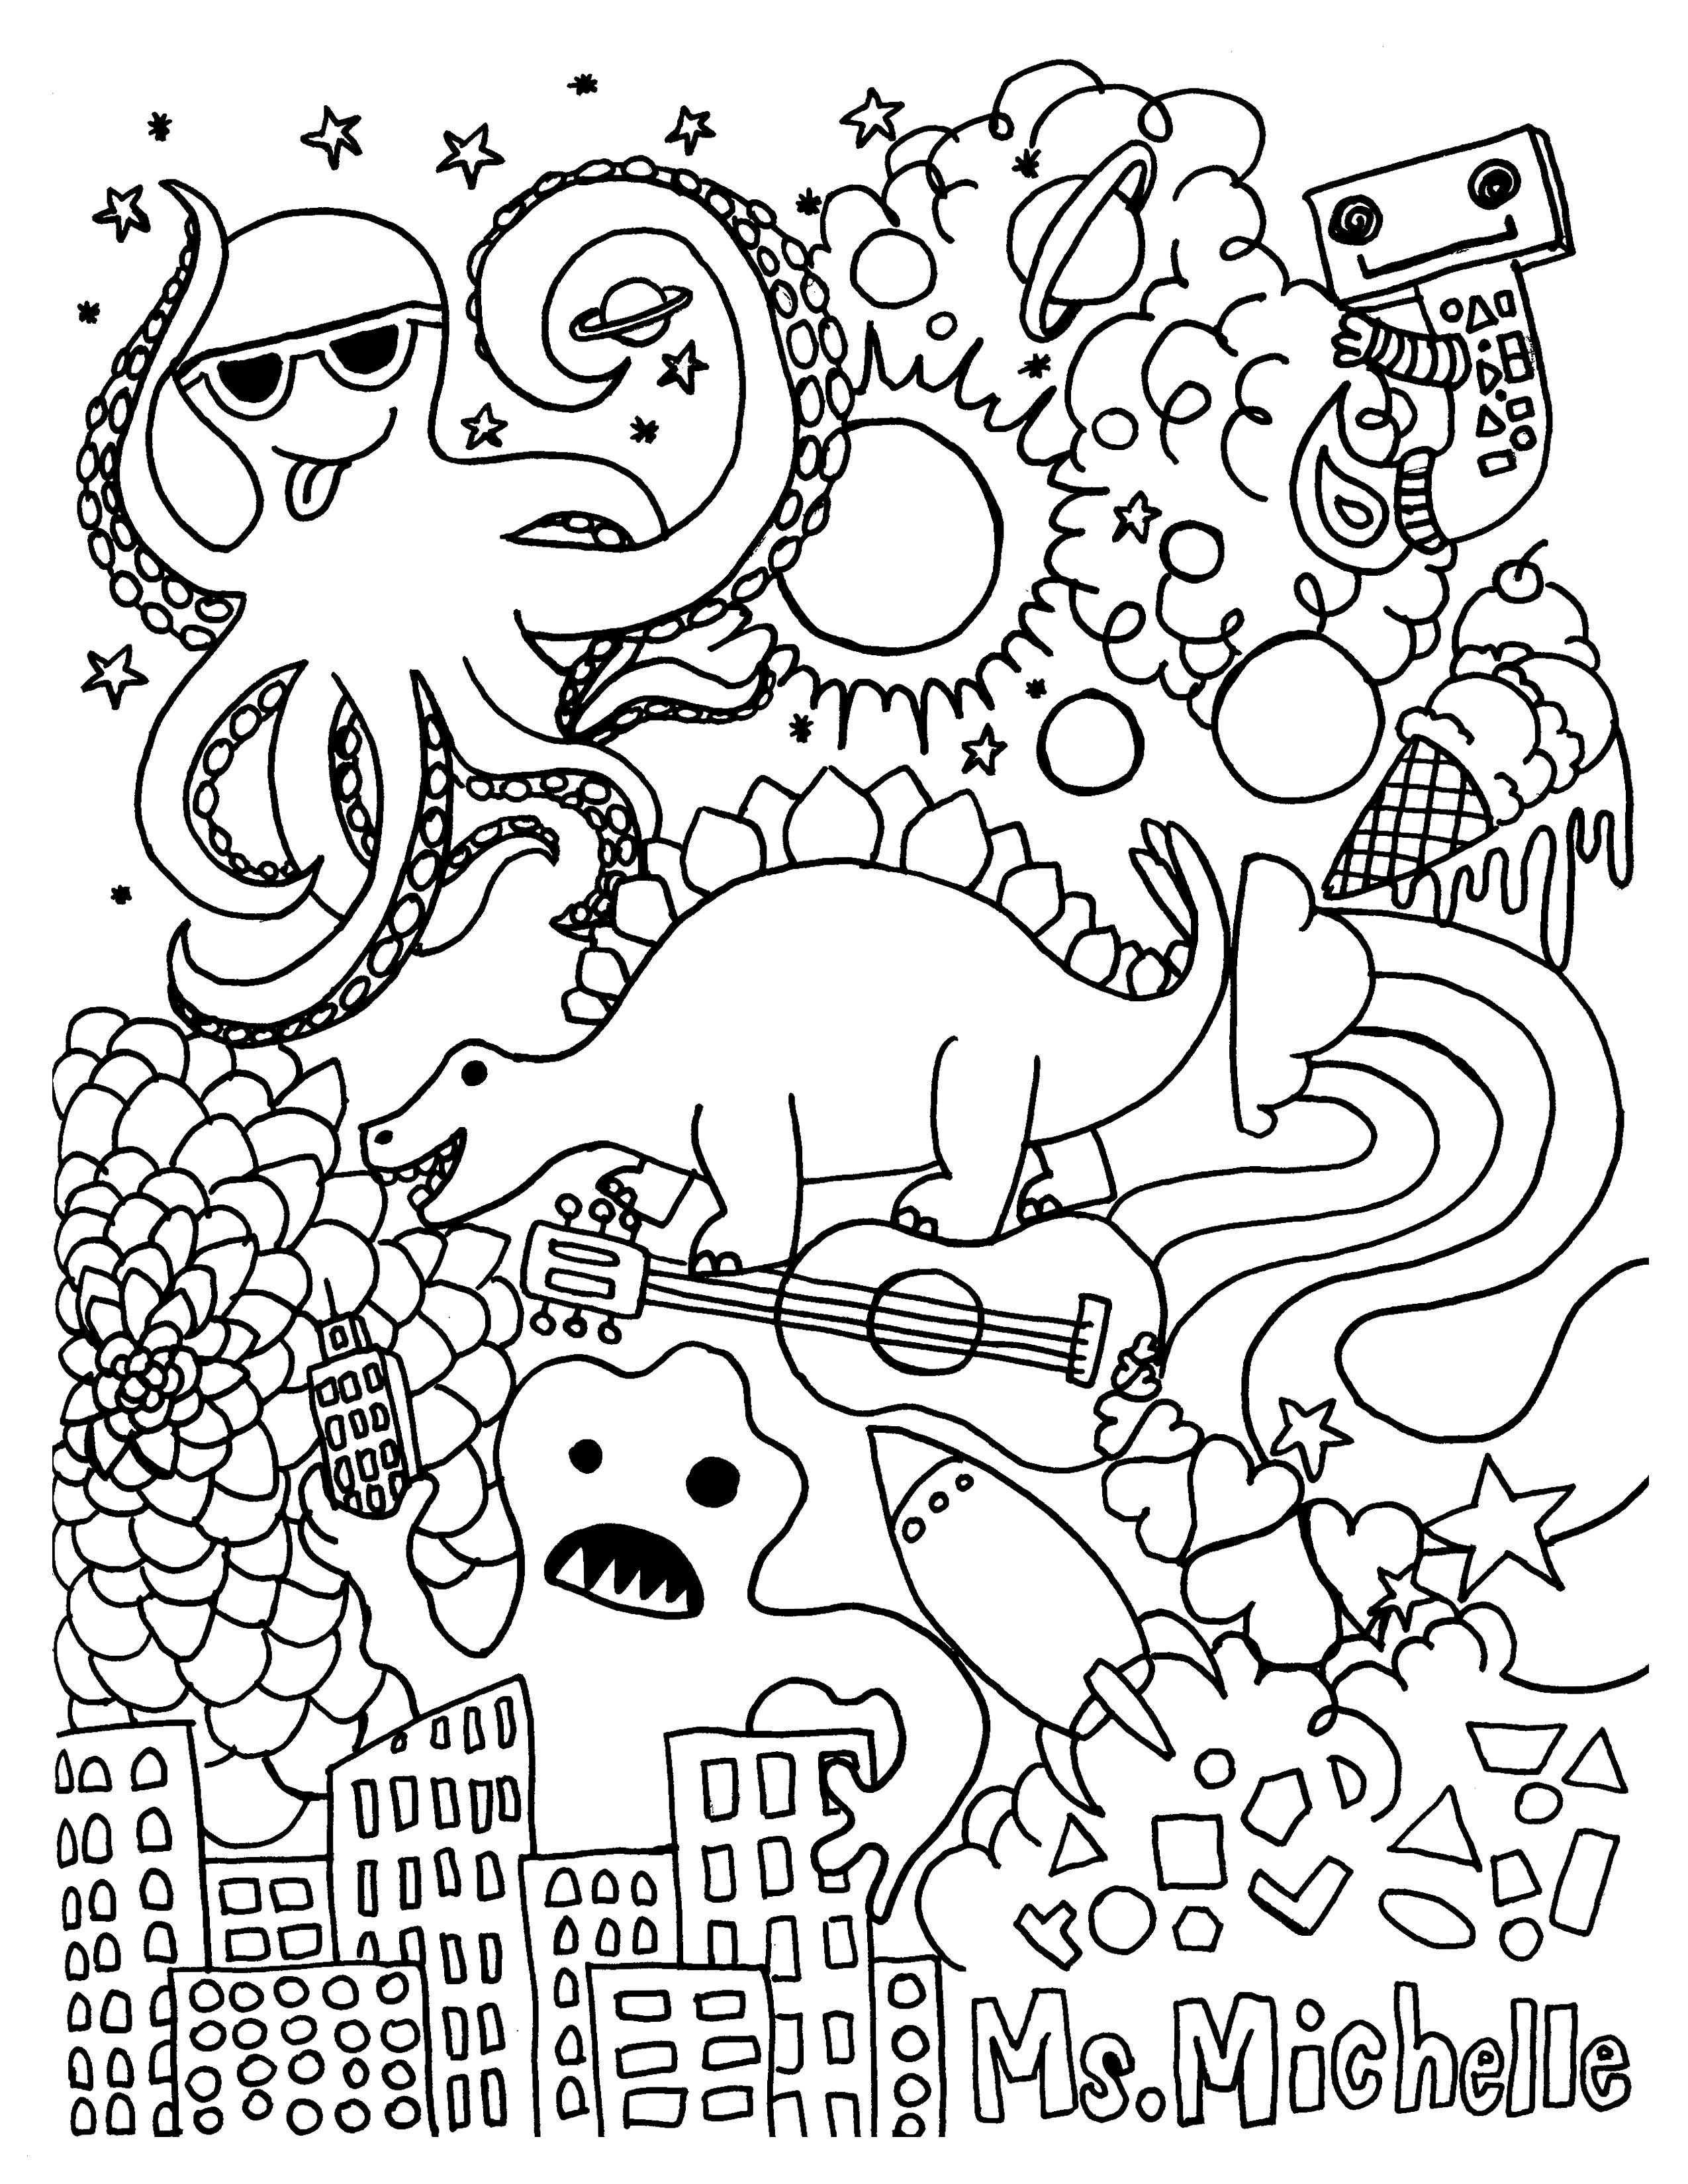 Mummy Coloring Pages  Download 7e - Save it to your computer